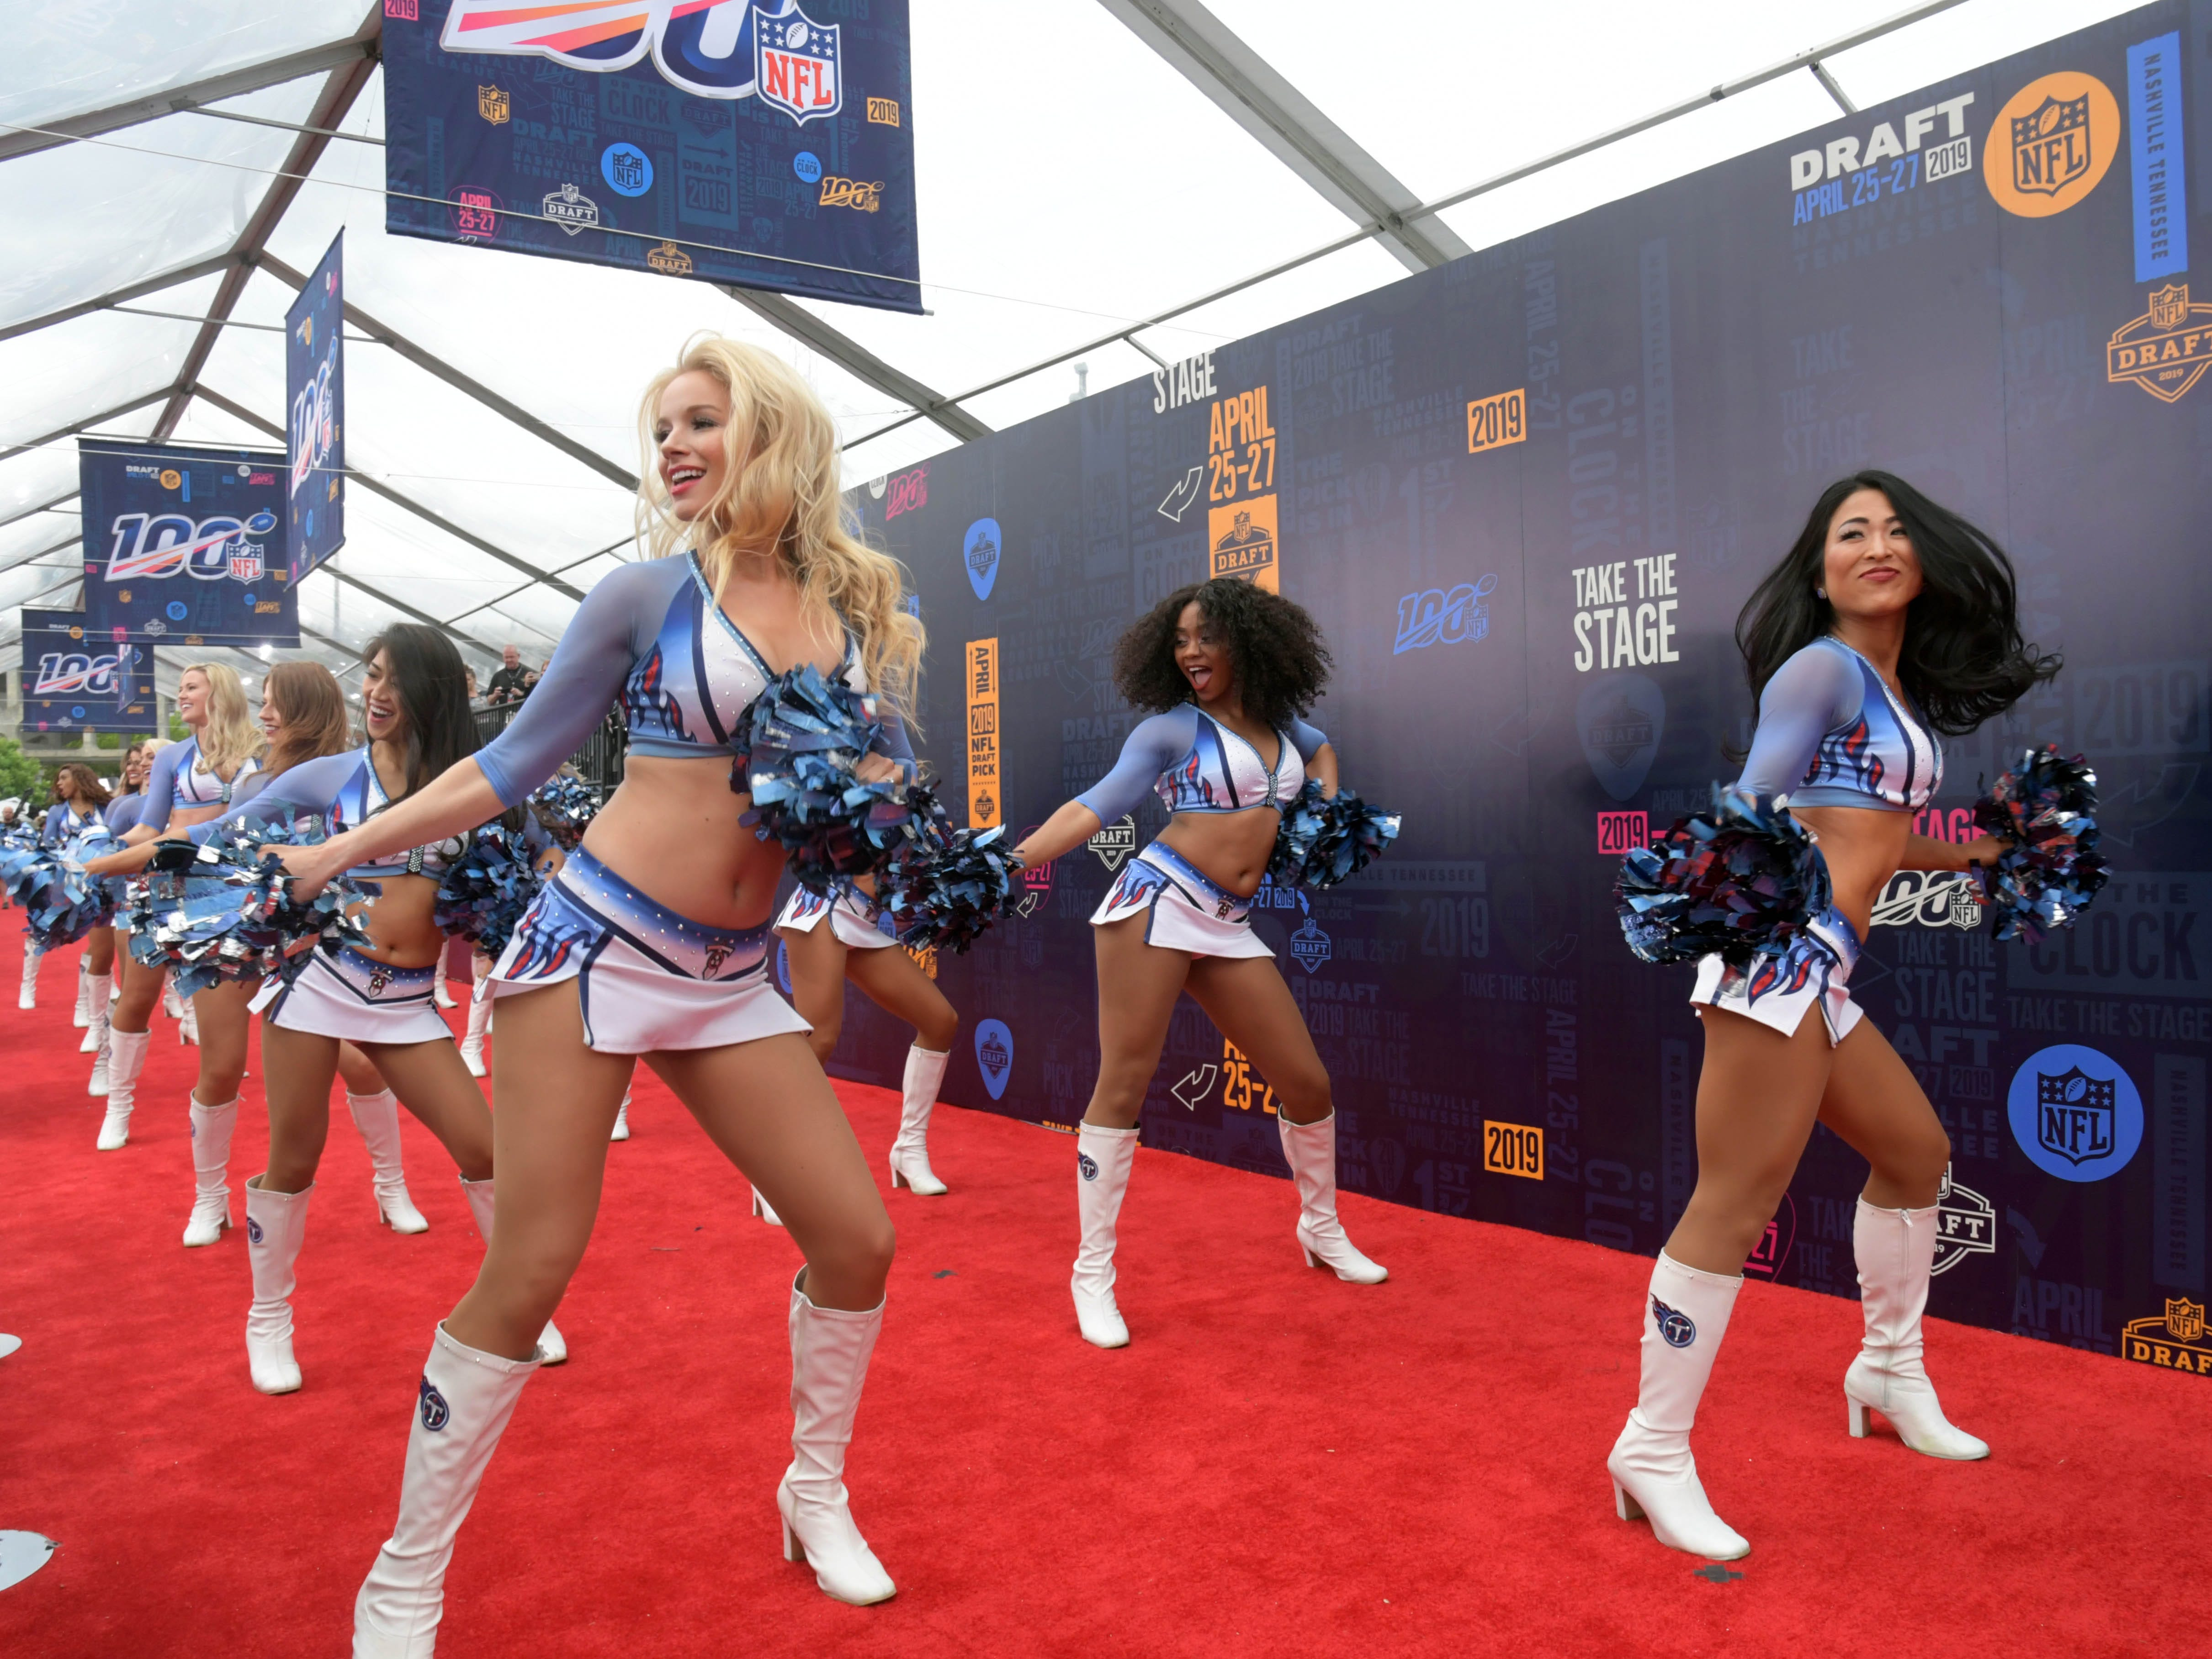 The Tennessee Titans cheerleaders on the red carpet prior to the first round of the 2019 NFL draft.